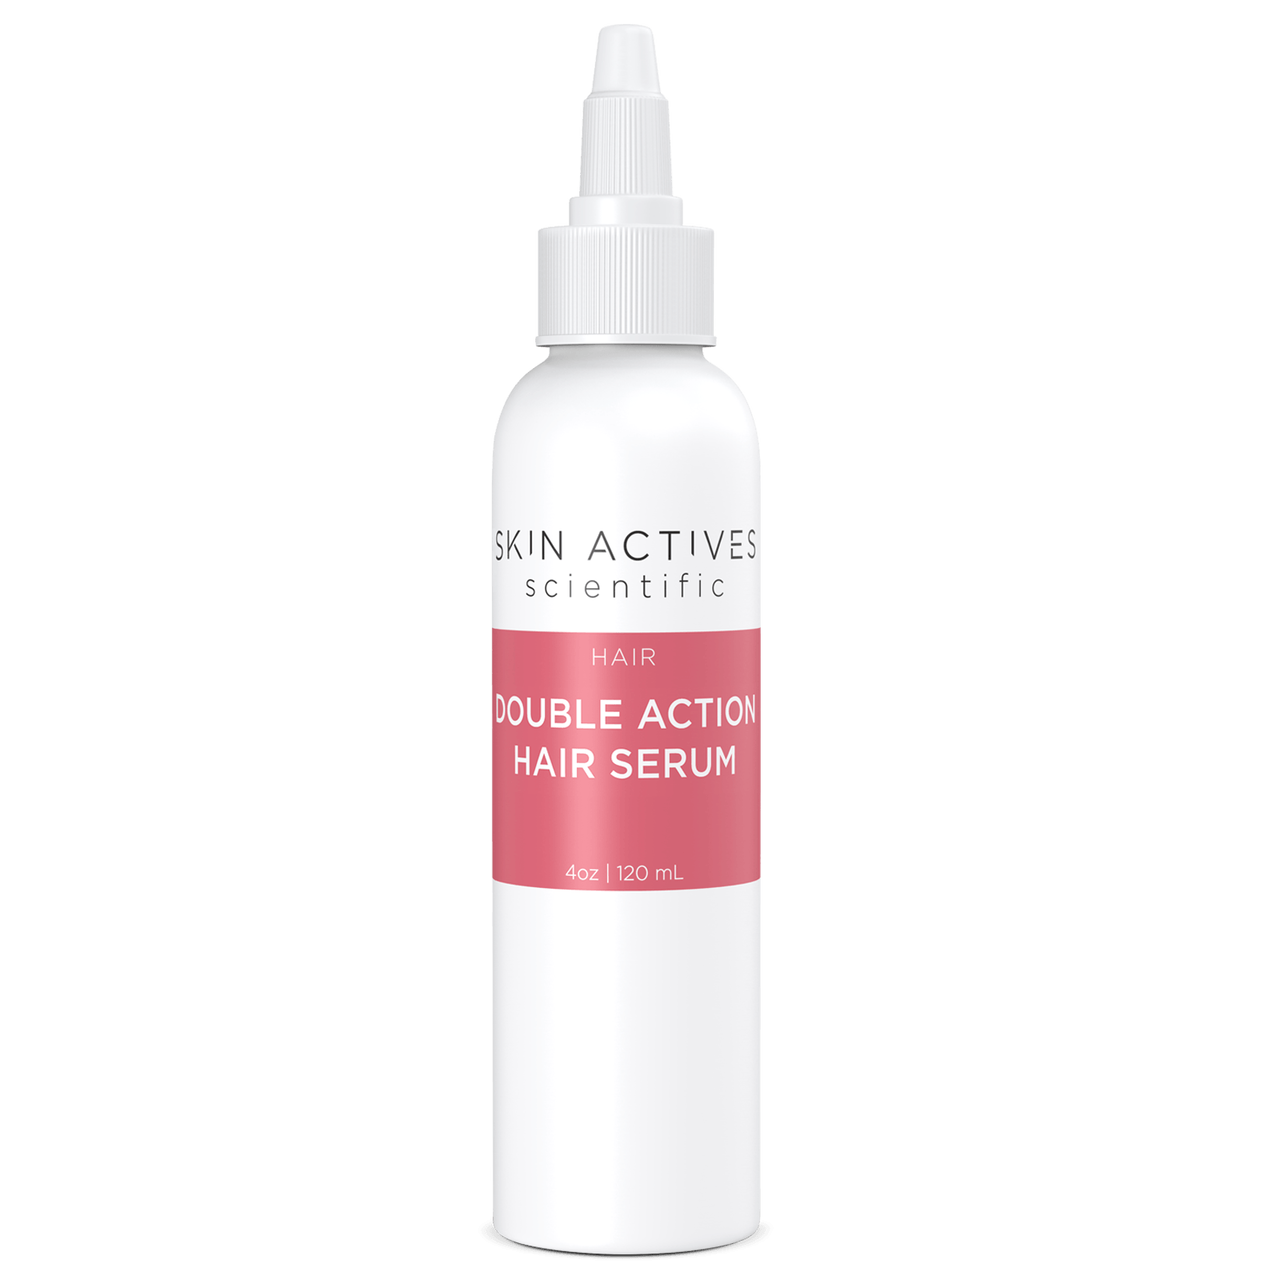 Skin Actives Double Action Hair Serum